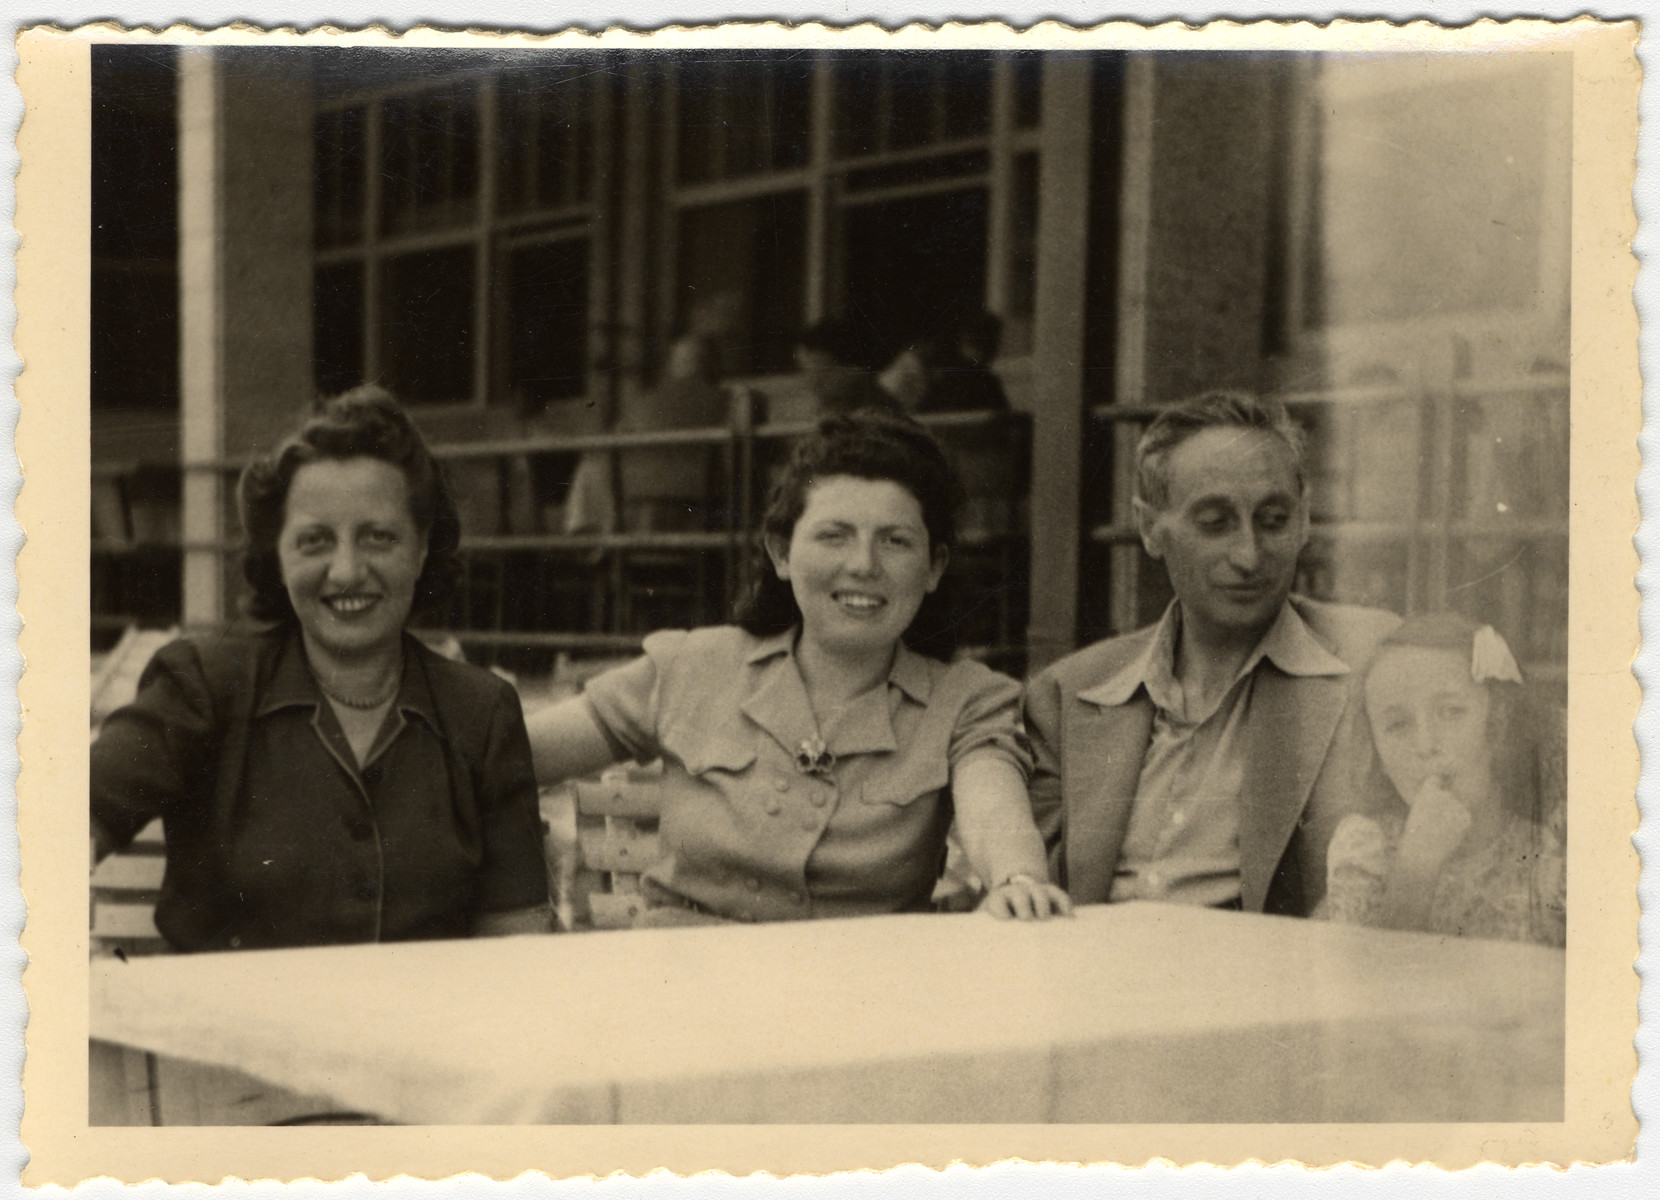 A Jewish family sits by an outdoor table after the war.  From left to right are Marta Mandler (a cousin of the donor's mother), Erszi Herzel, Ludwig Engel, and Katie Engel.